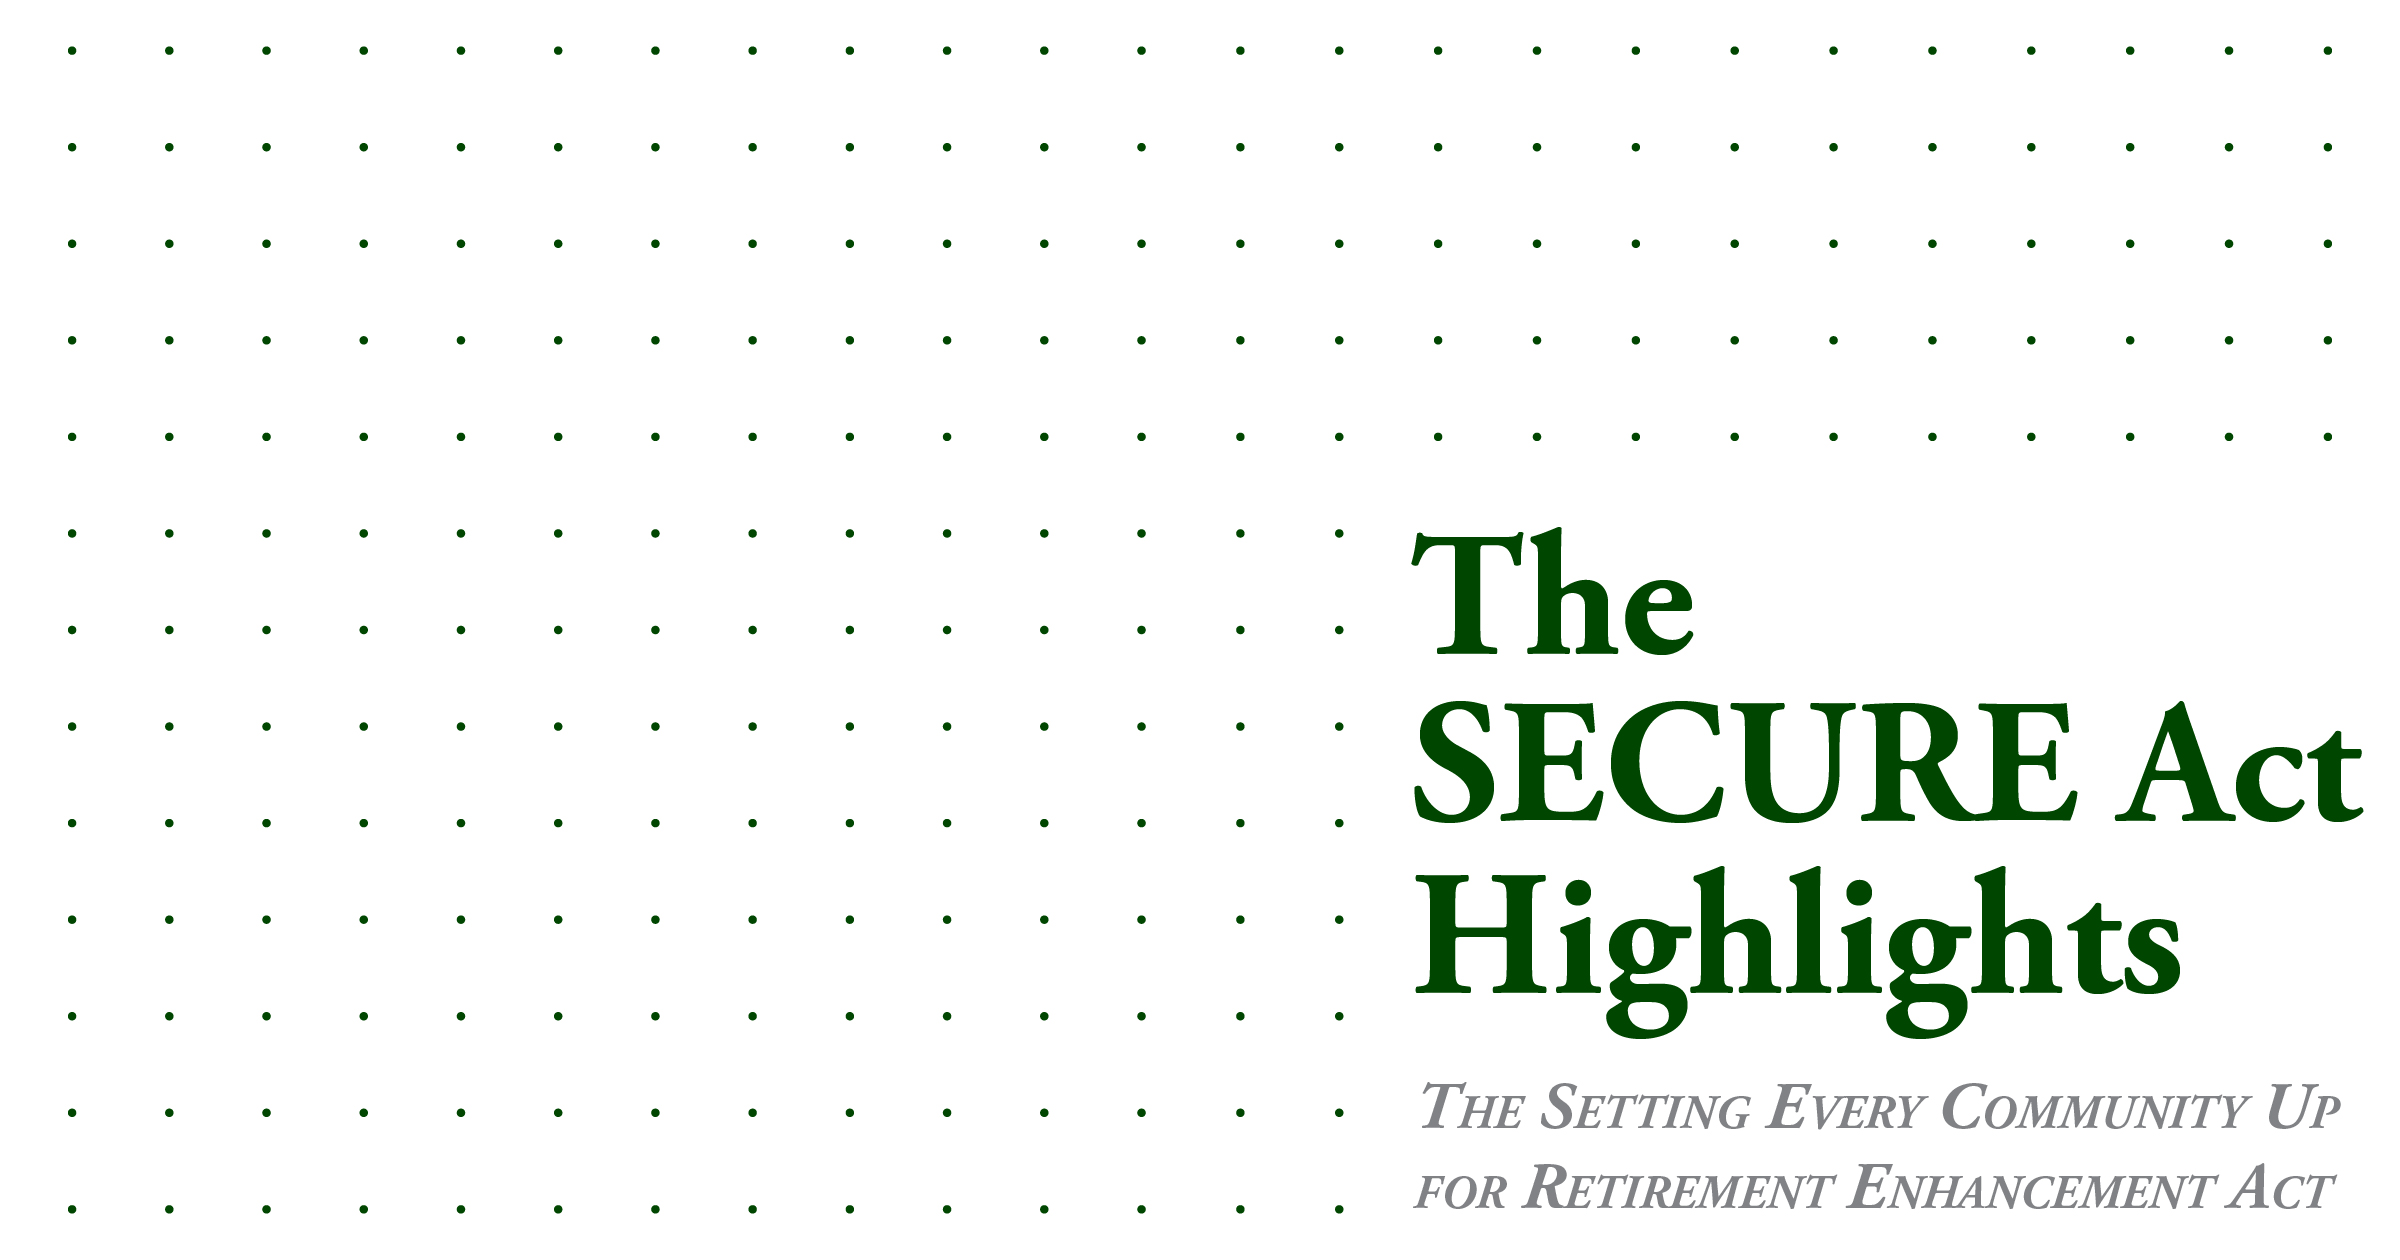 The SECURE Act Highlights